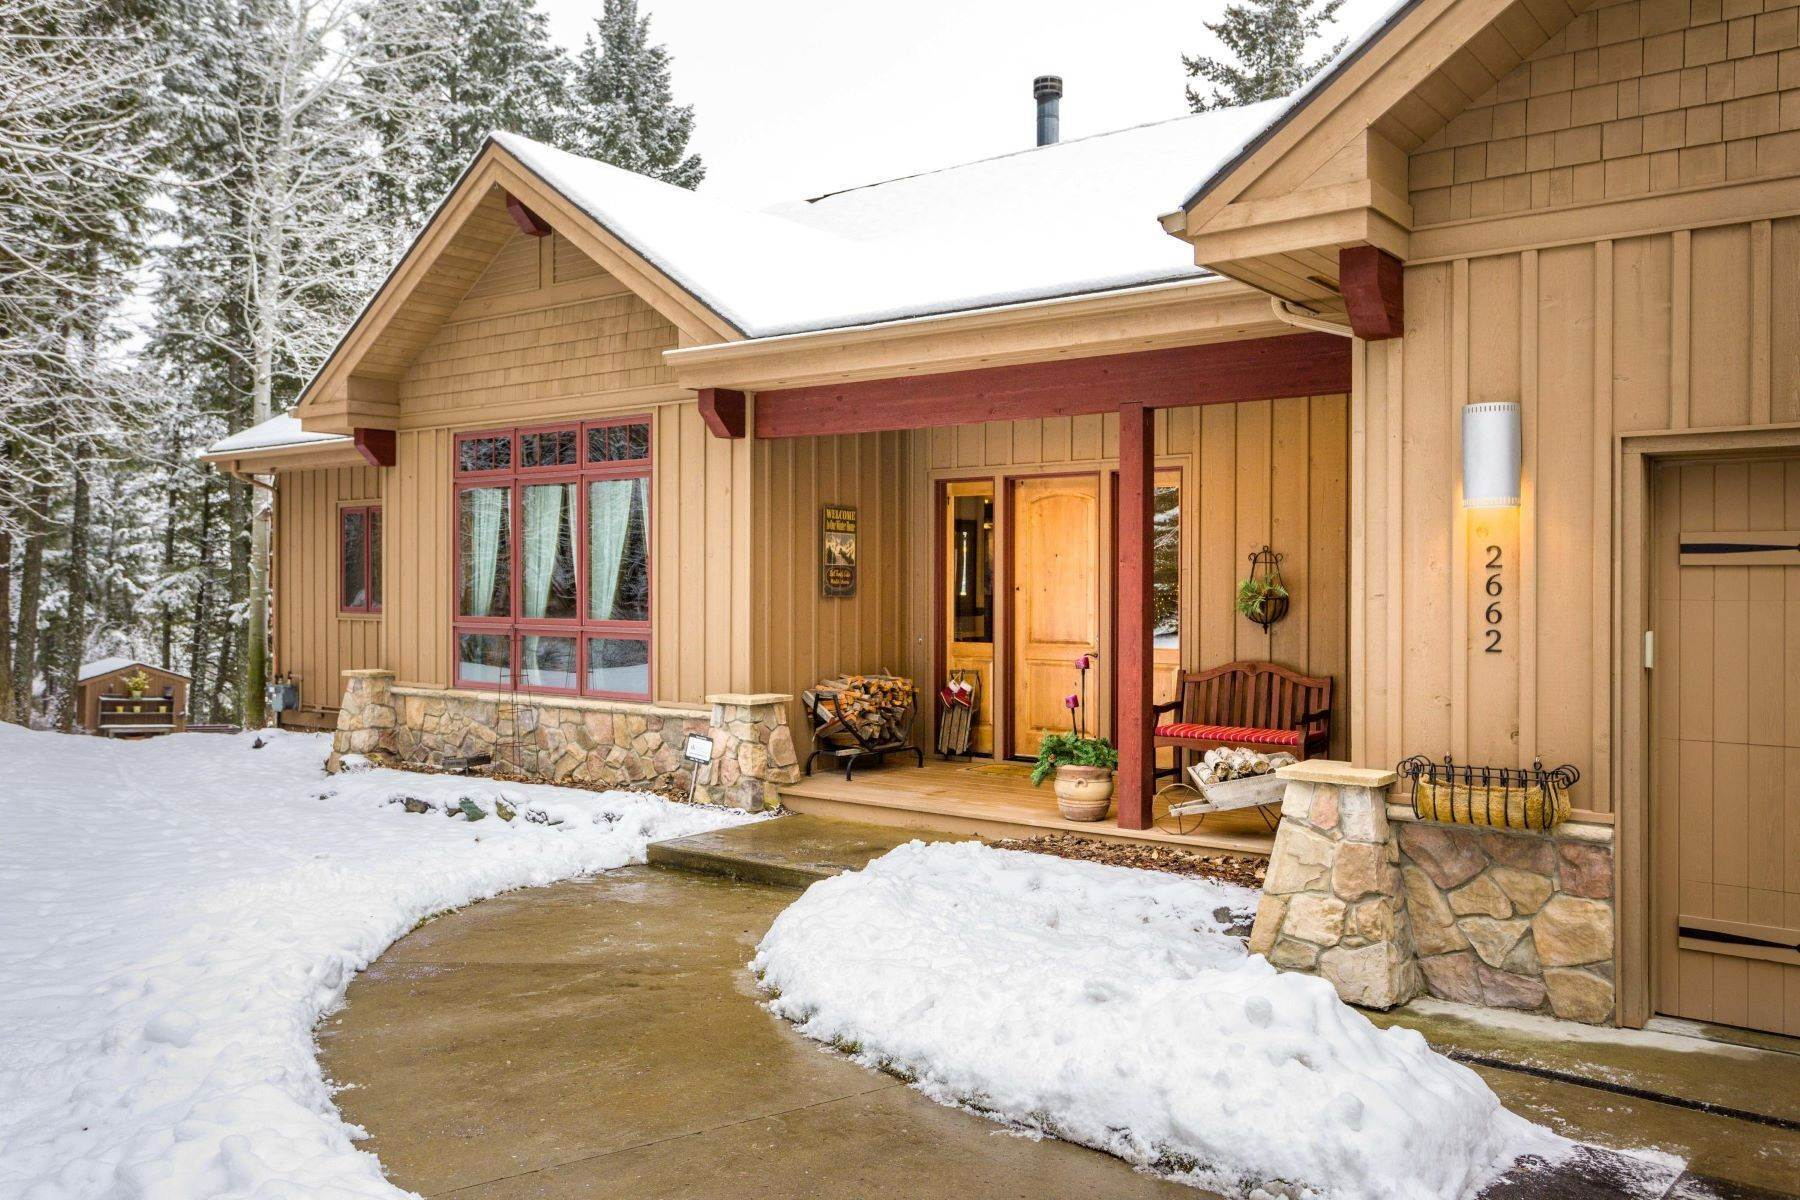 Property for Sale at Whitefish Lake View Home 2662 Rest Haven Drive Whitefish, Montana 59937 United States